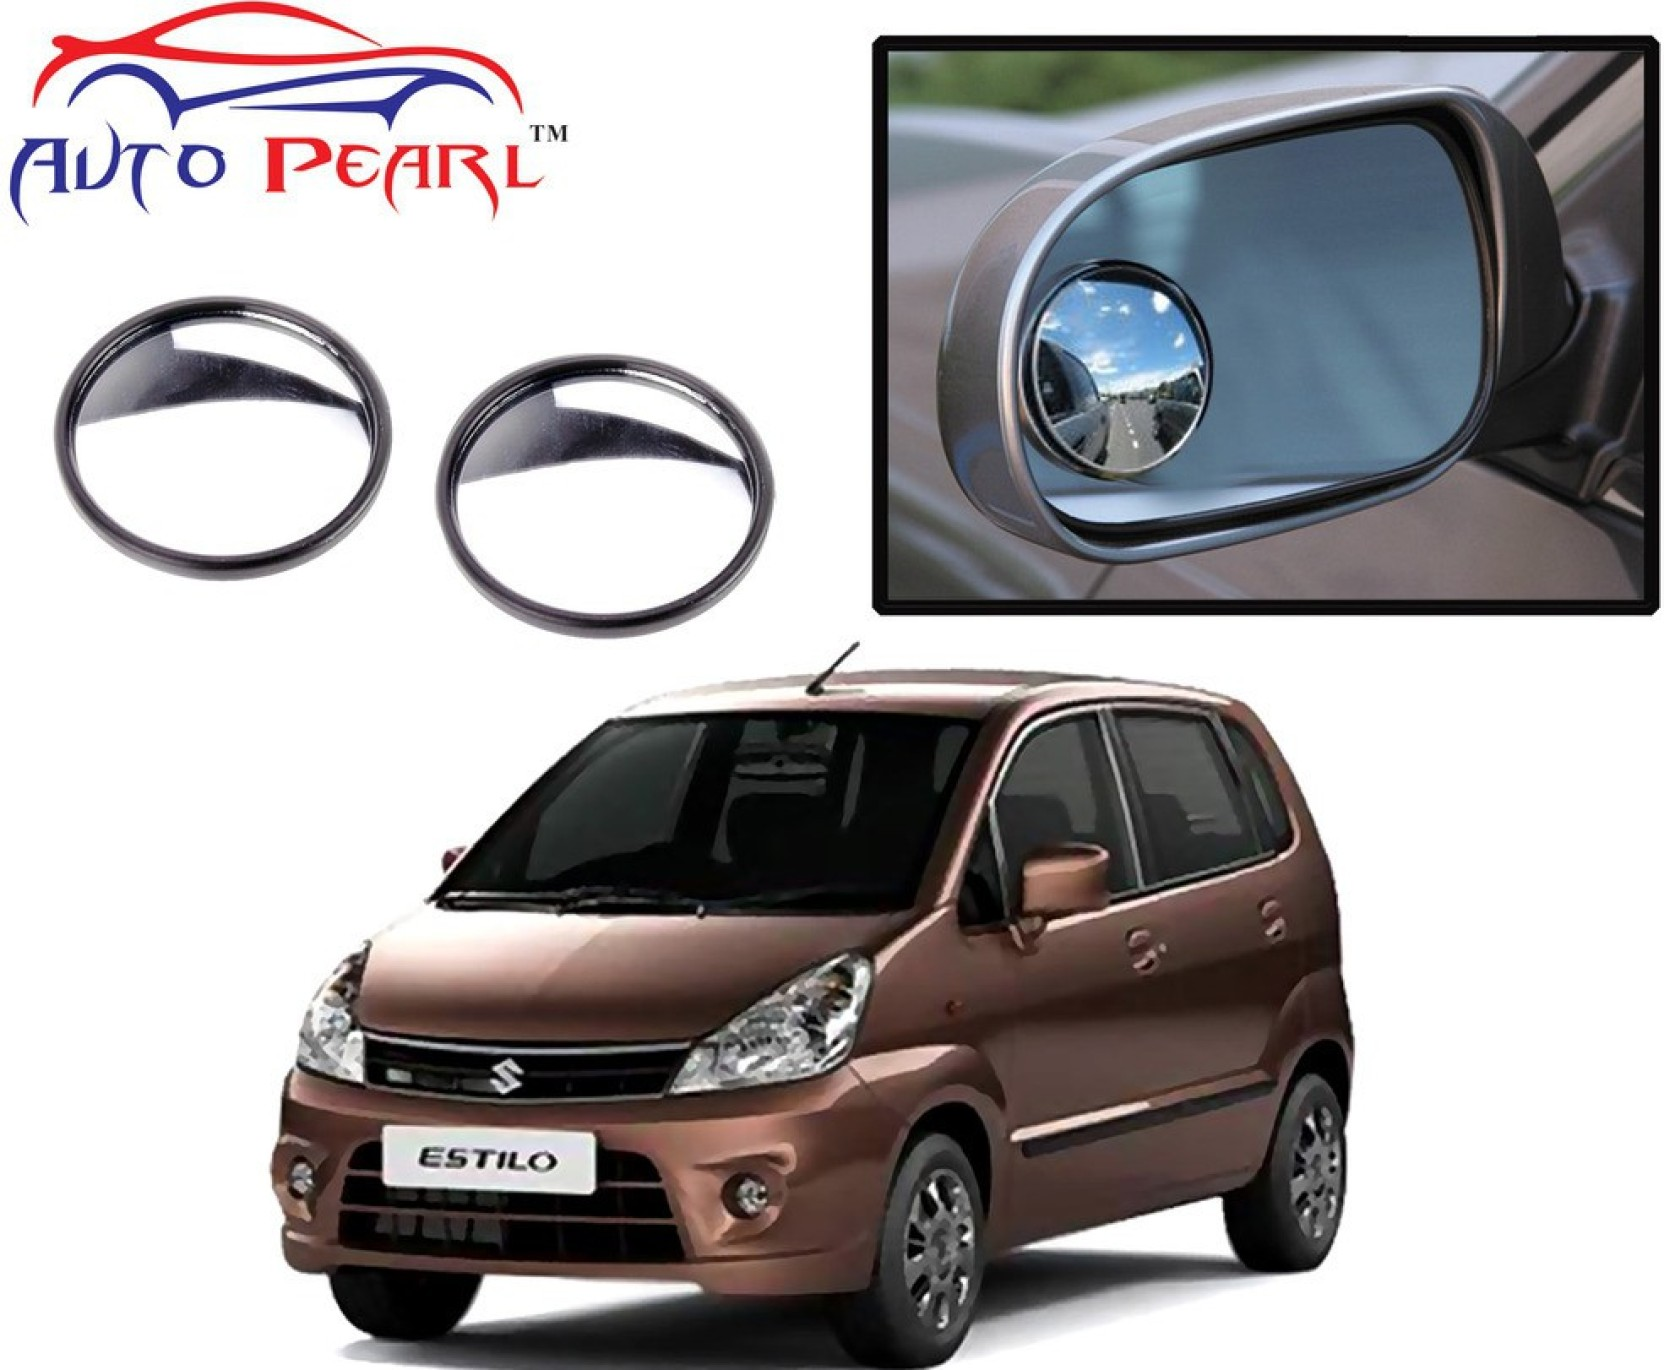 Auto pearl manual rear view mirror for maruti suzuki zen estilo exterior